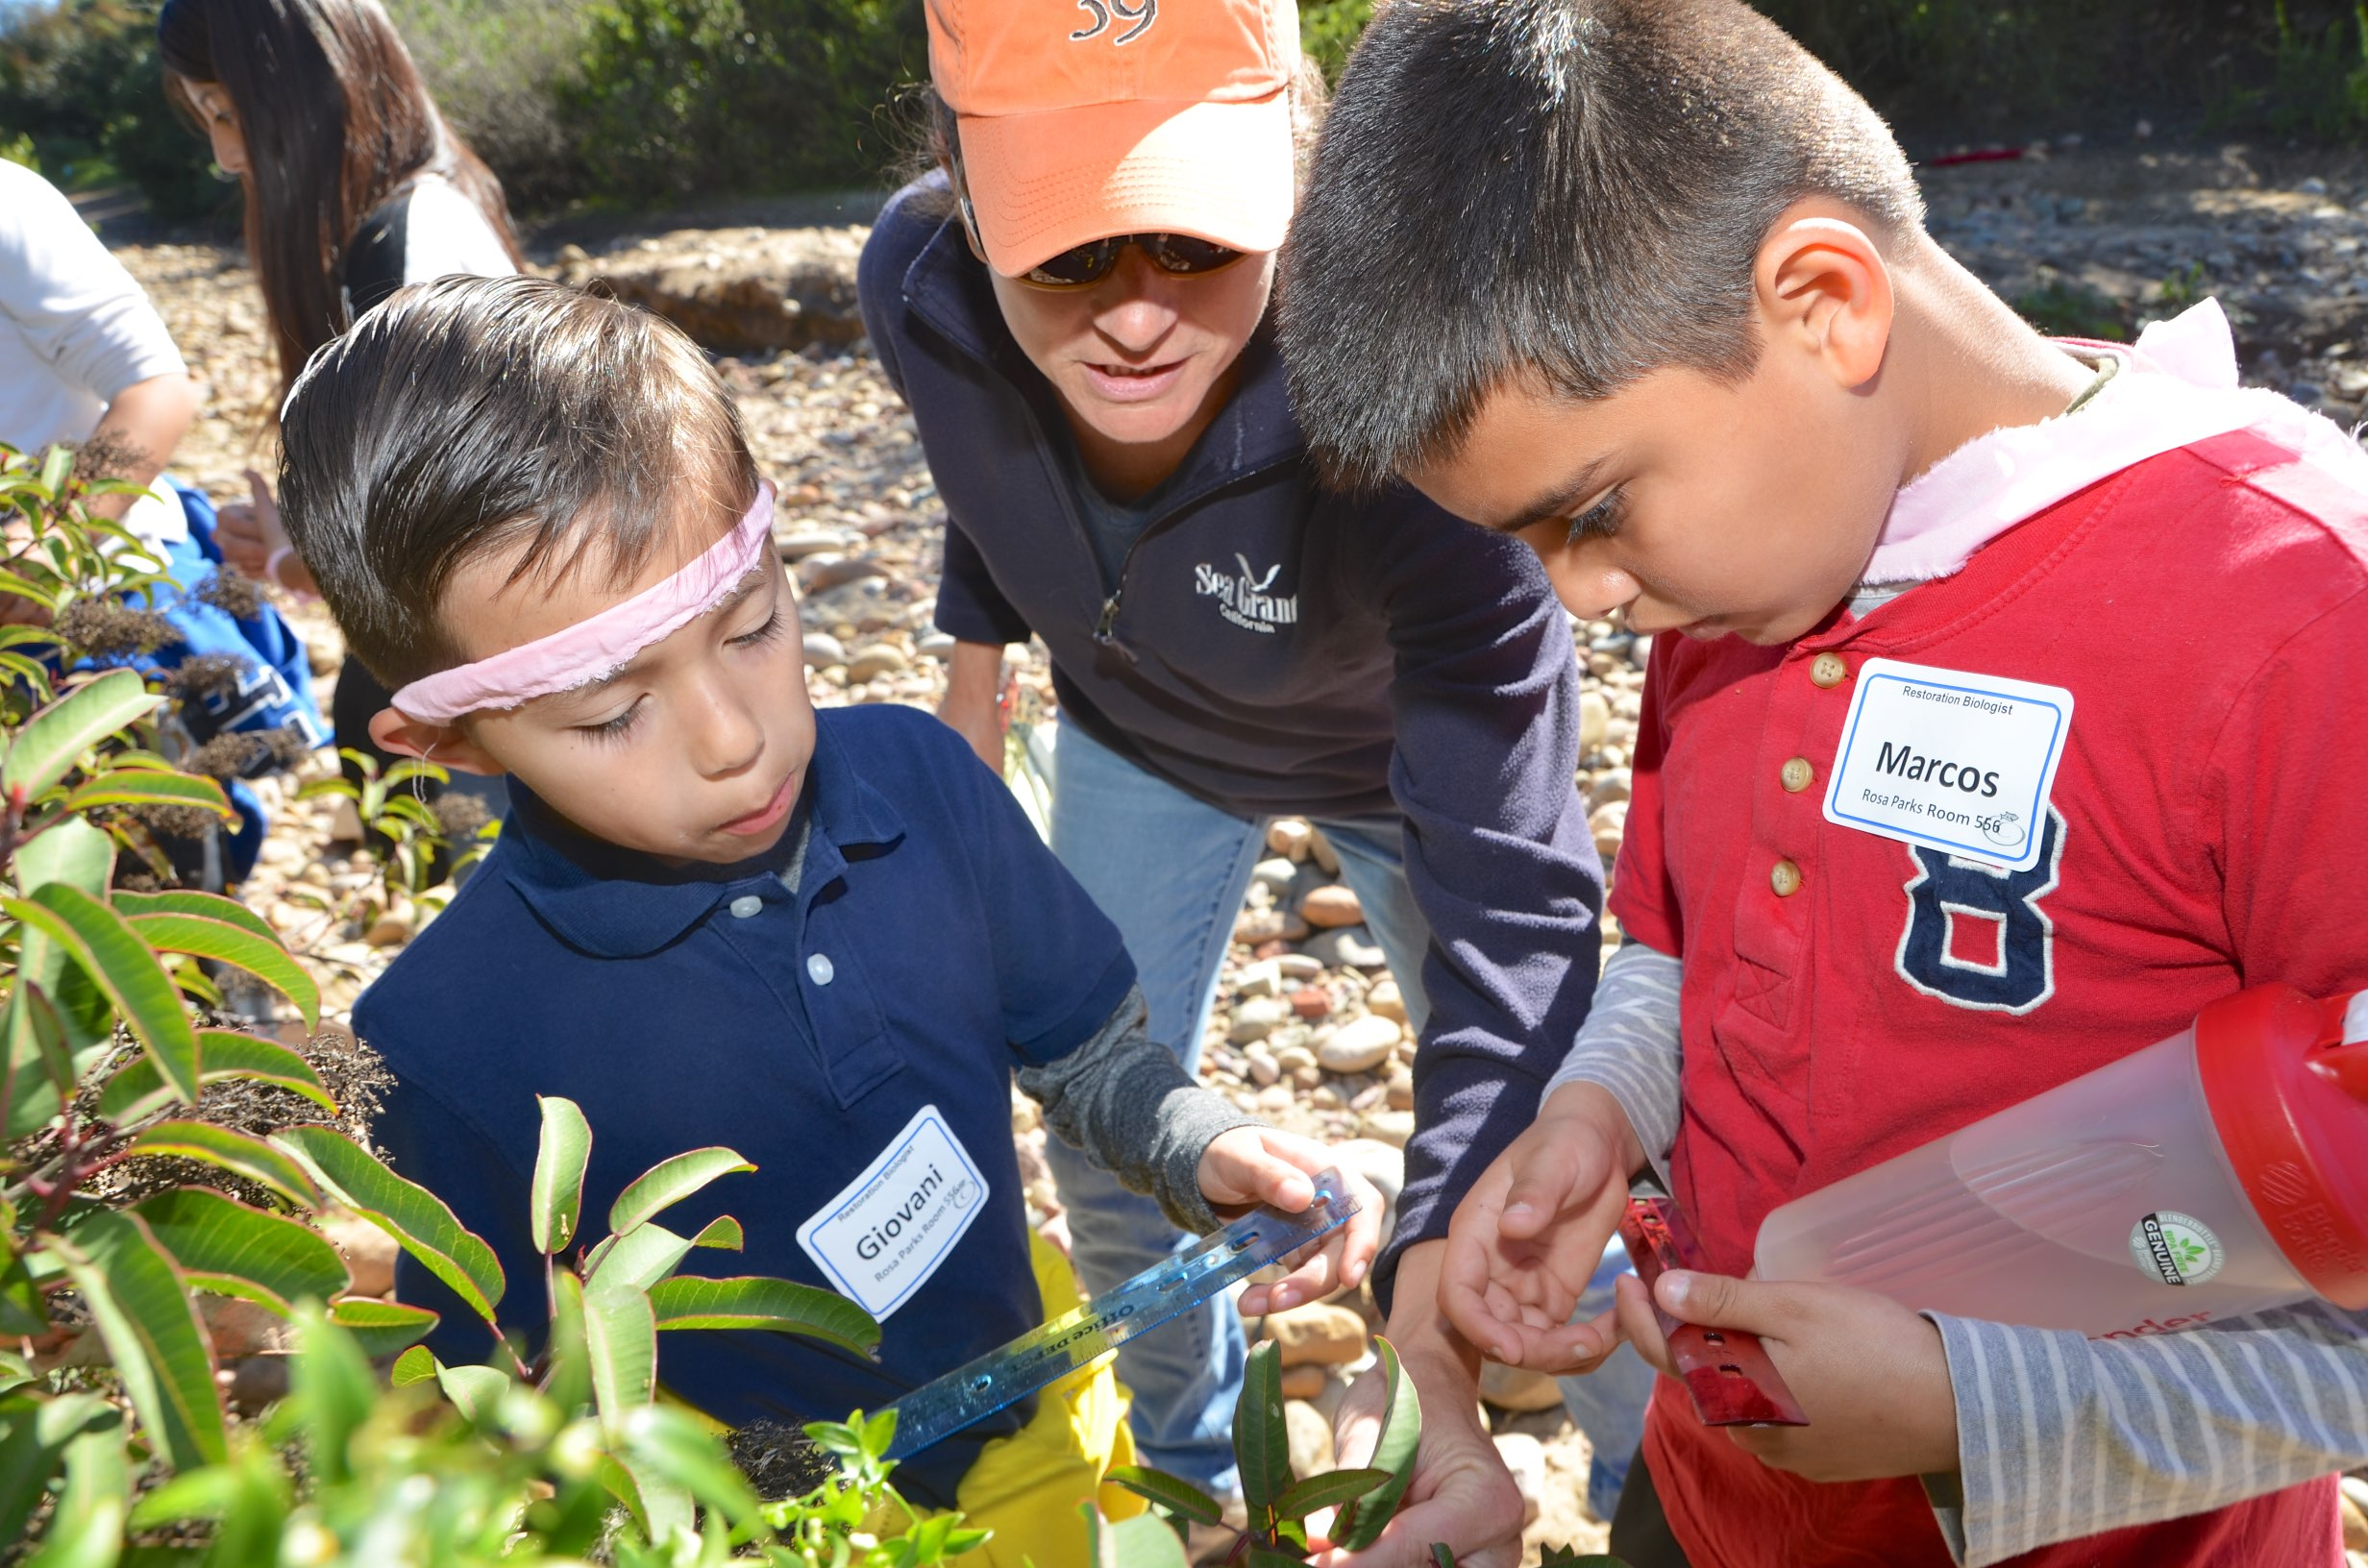 Theresa Talley, center, shows schoolchildren how to measure a plant. Credit: Dennis Wood